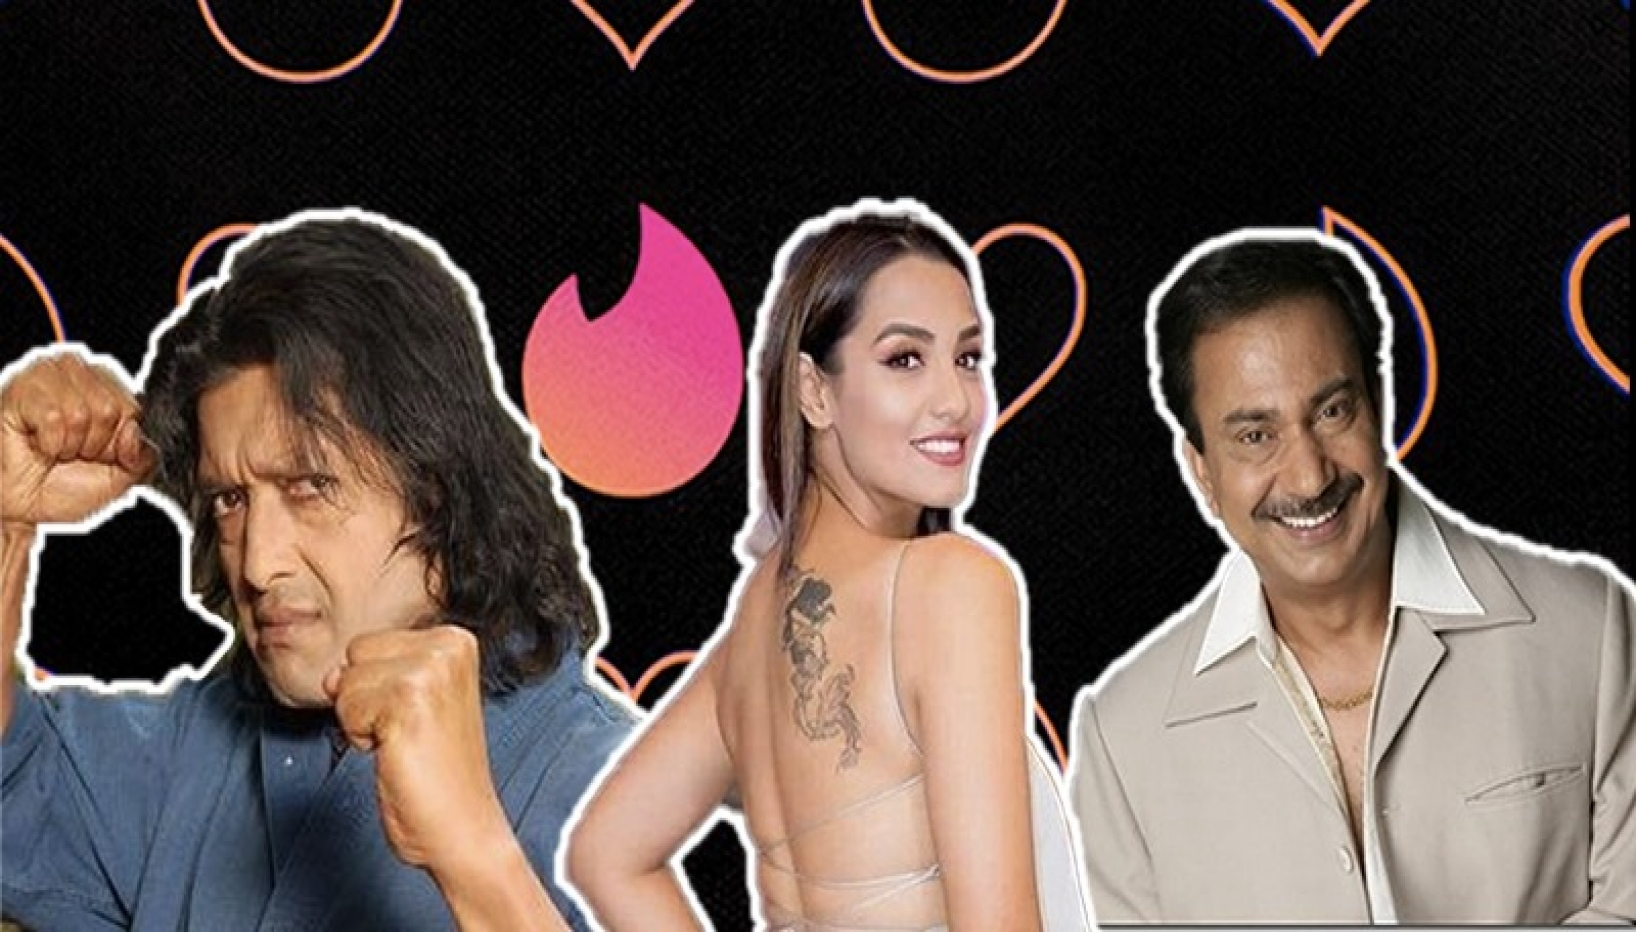 What If Nepali Celebs Had Honest Dating Profiles? Here's How We Imagined It!